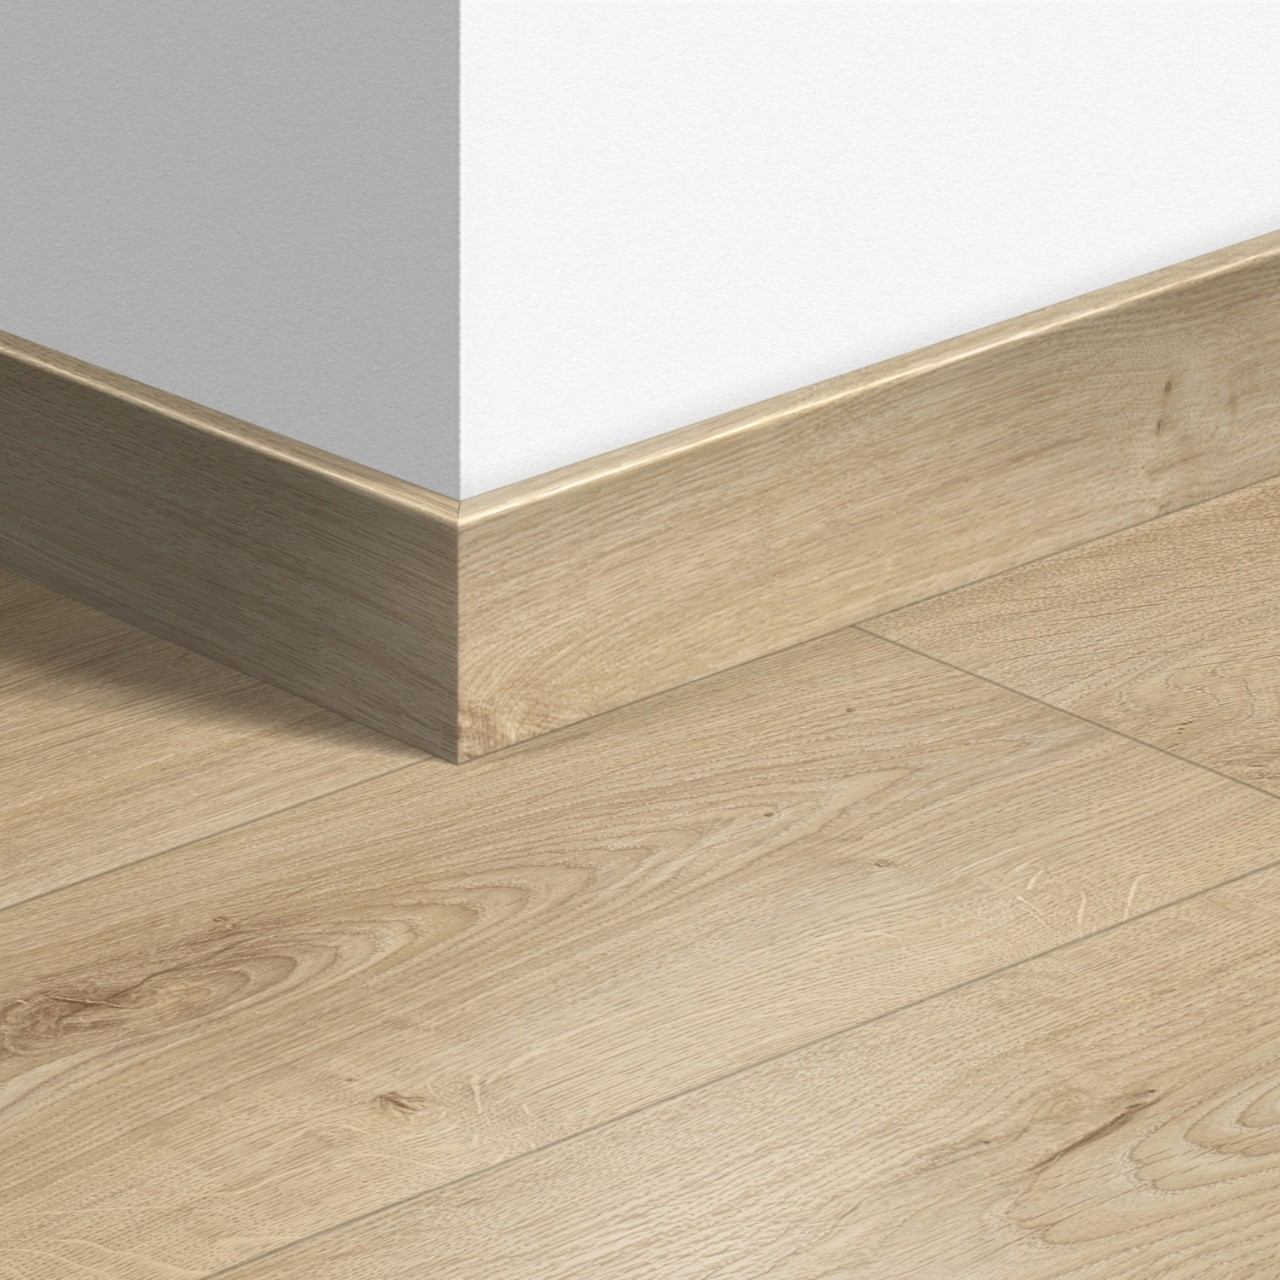 QSPSKR Laminate Accessories Classic oak beige QSPSKR01847